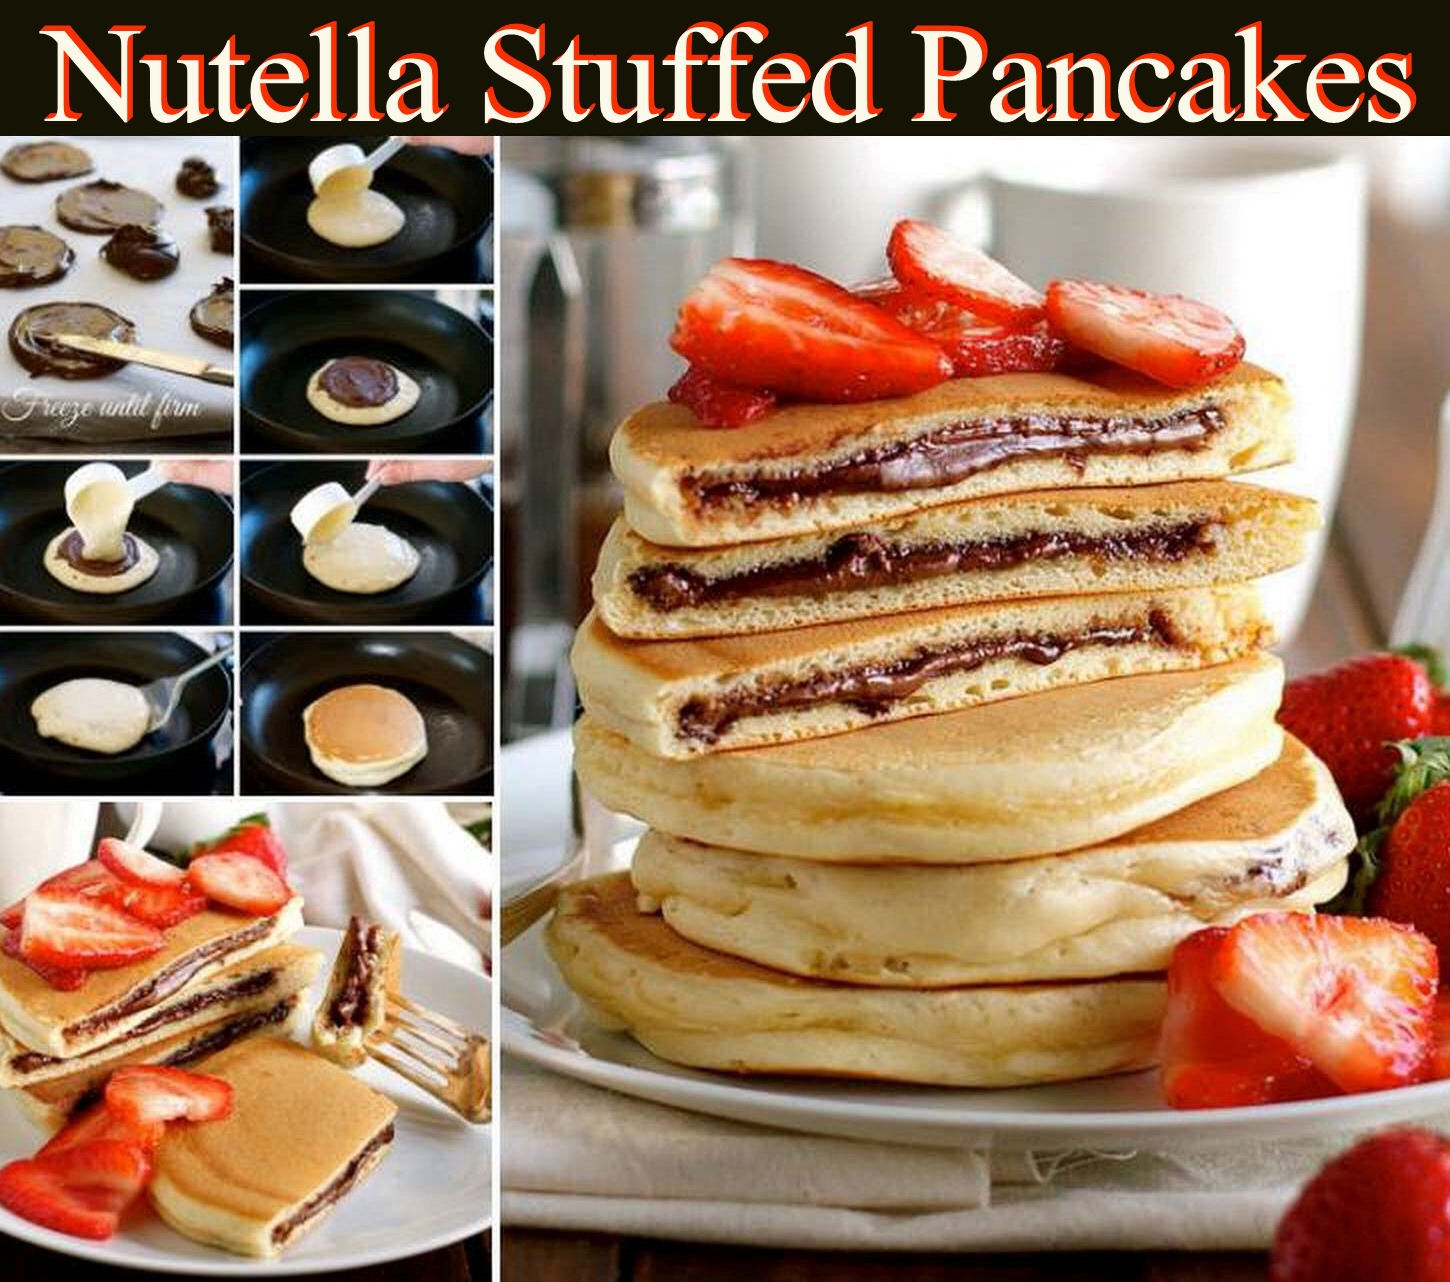 ideas wedding pictures outdoors - Nutella Stuffed Pancakes Recipe s and